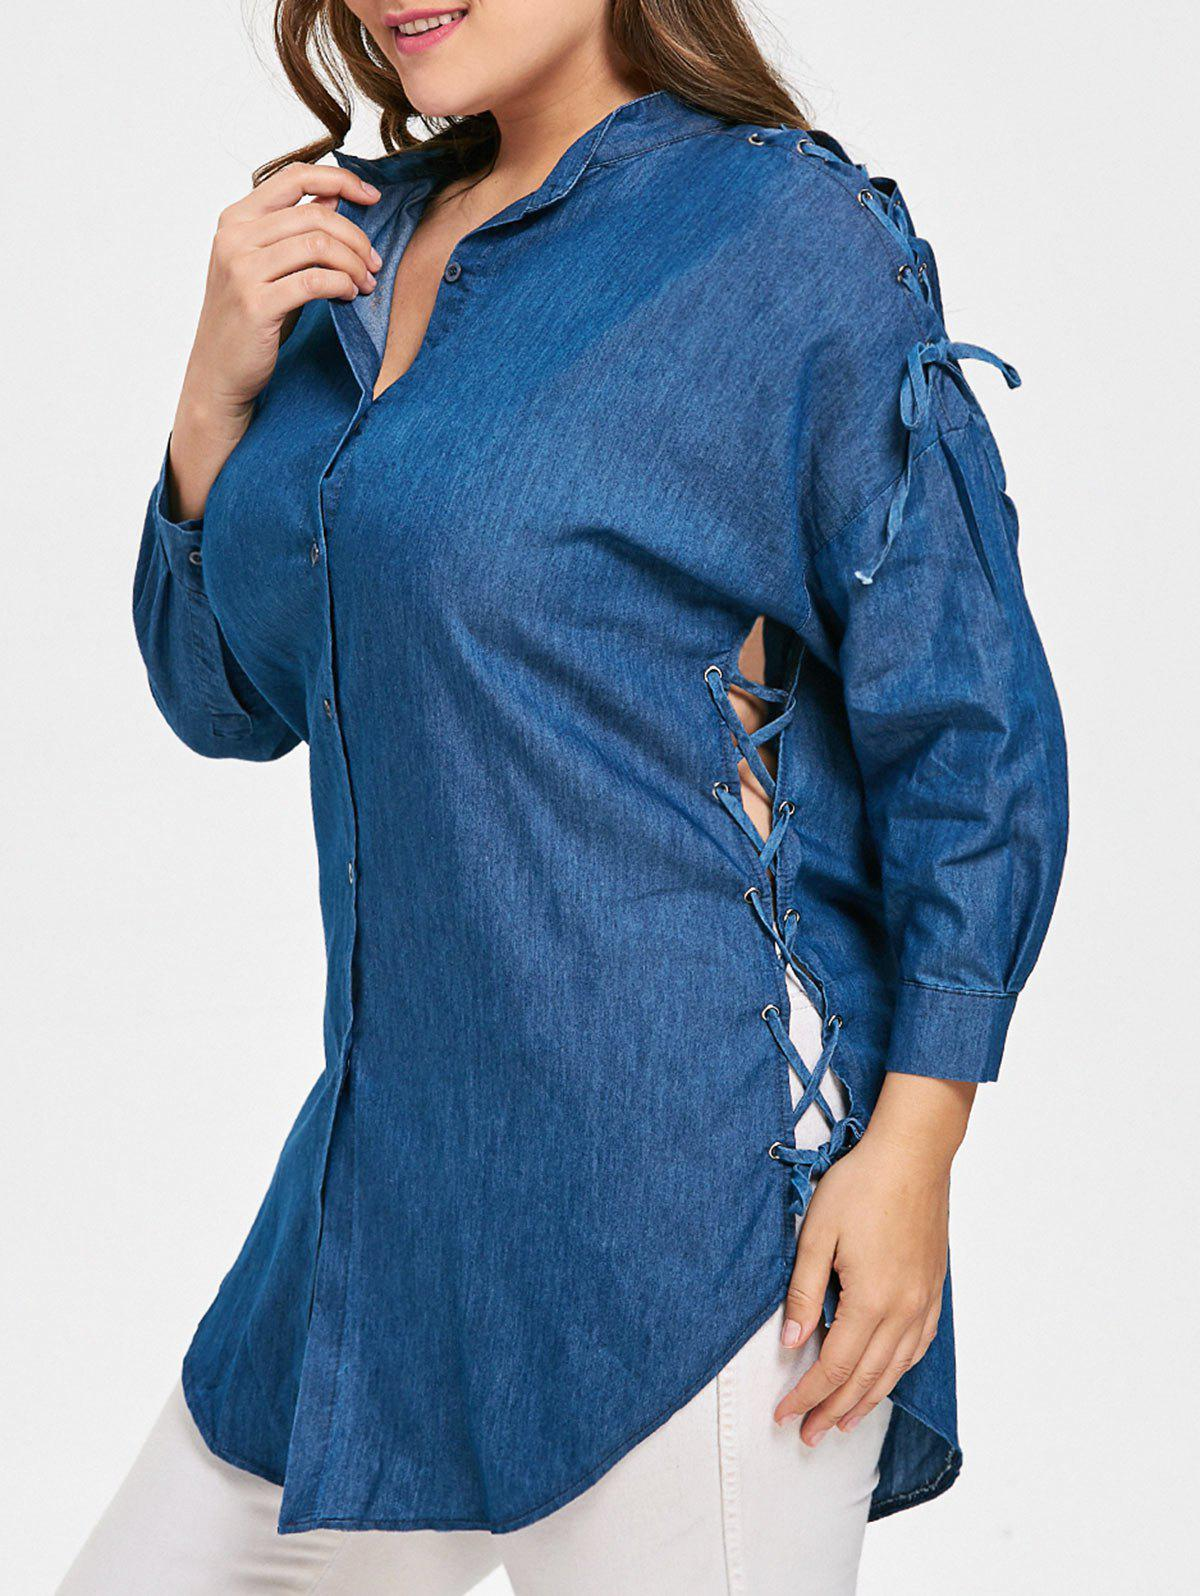 Drop Shoulder Lace Up Plus Size BlouseWOMEN<br><br>Size: 3XL; Color: DENIM BLUE; Material: Cotton,Polyester; Shirt Length: Long; Sleeve Length: Three Quarter; Collar: Stand-Up Collar; Style: Fashion; Season: Fall; Embellishment: Criss-Cross; Pattern Type: Solid; Weight: 0.2750kg; Package Contents: 1 x Blouse;